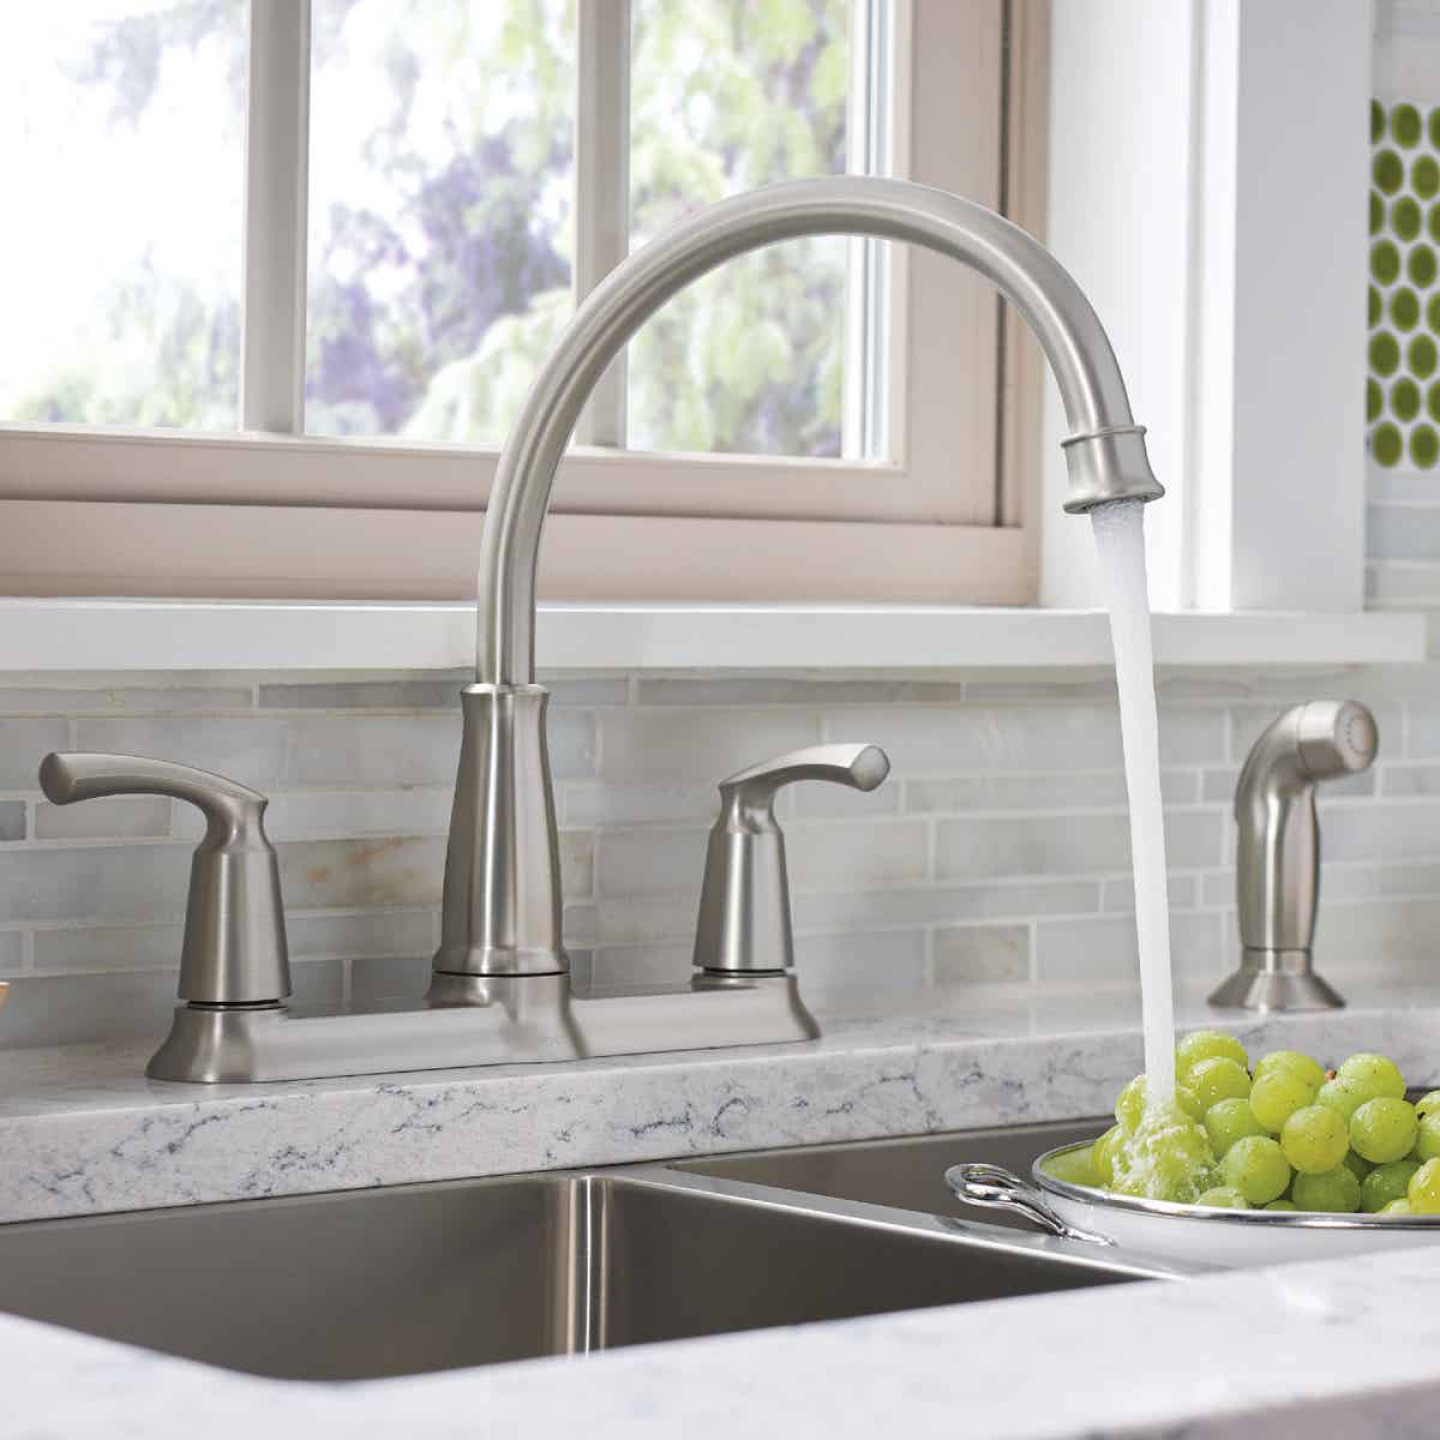 Moen Bexley Dual Handle Lever Kitchen Faucet with Side Spray, Stainless Image 3